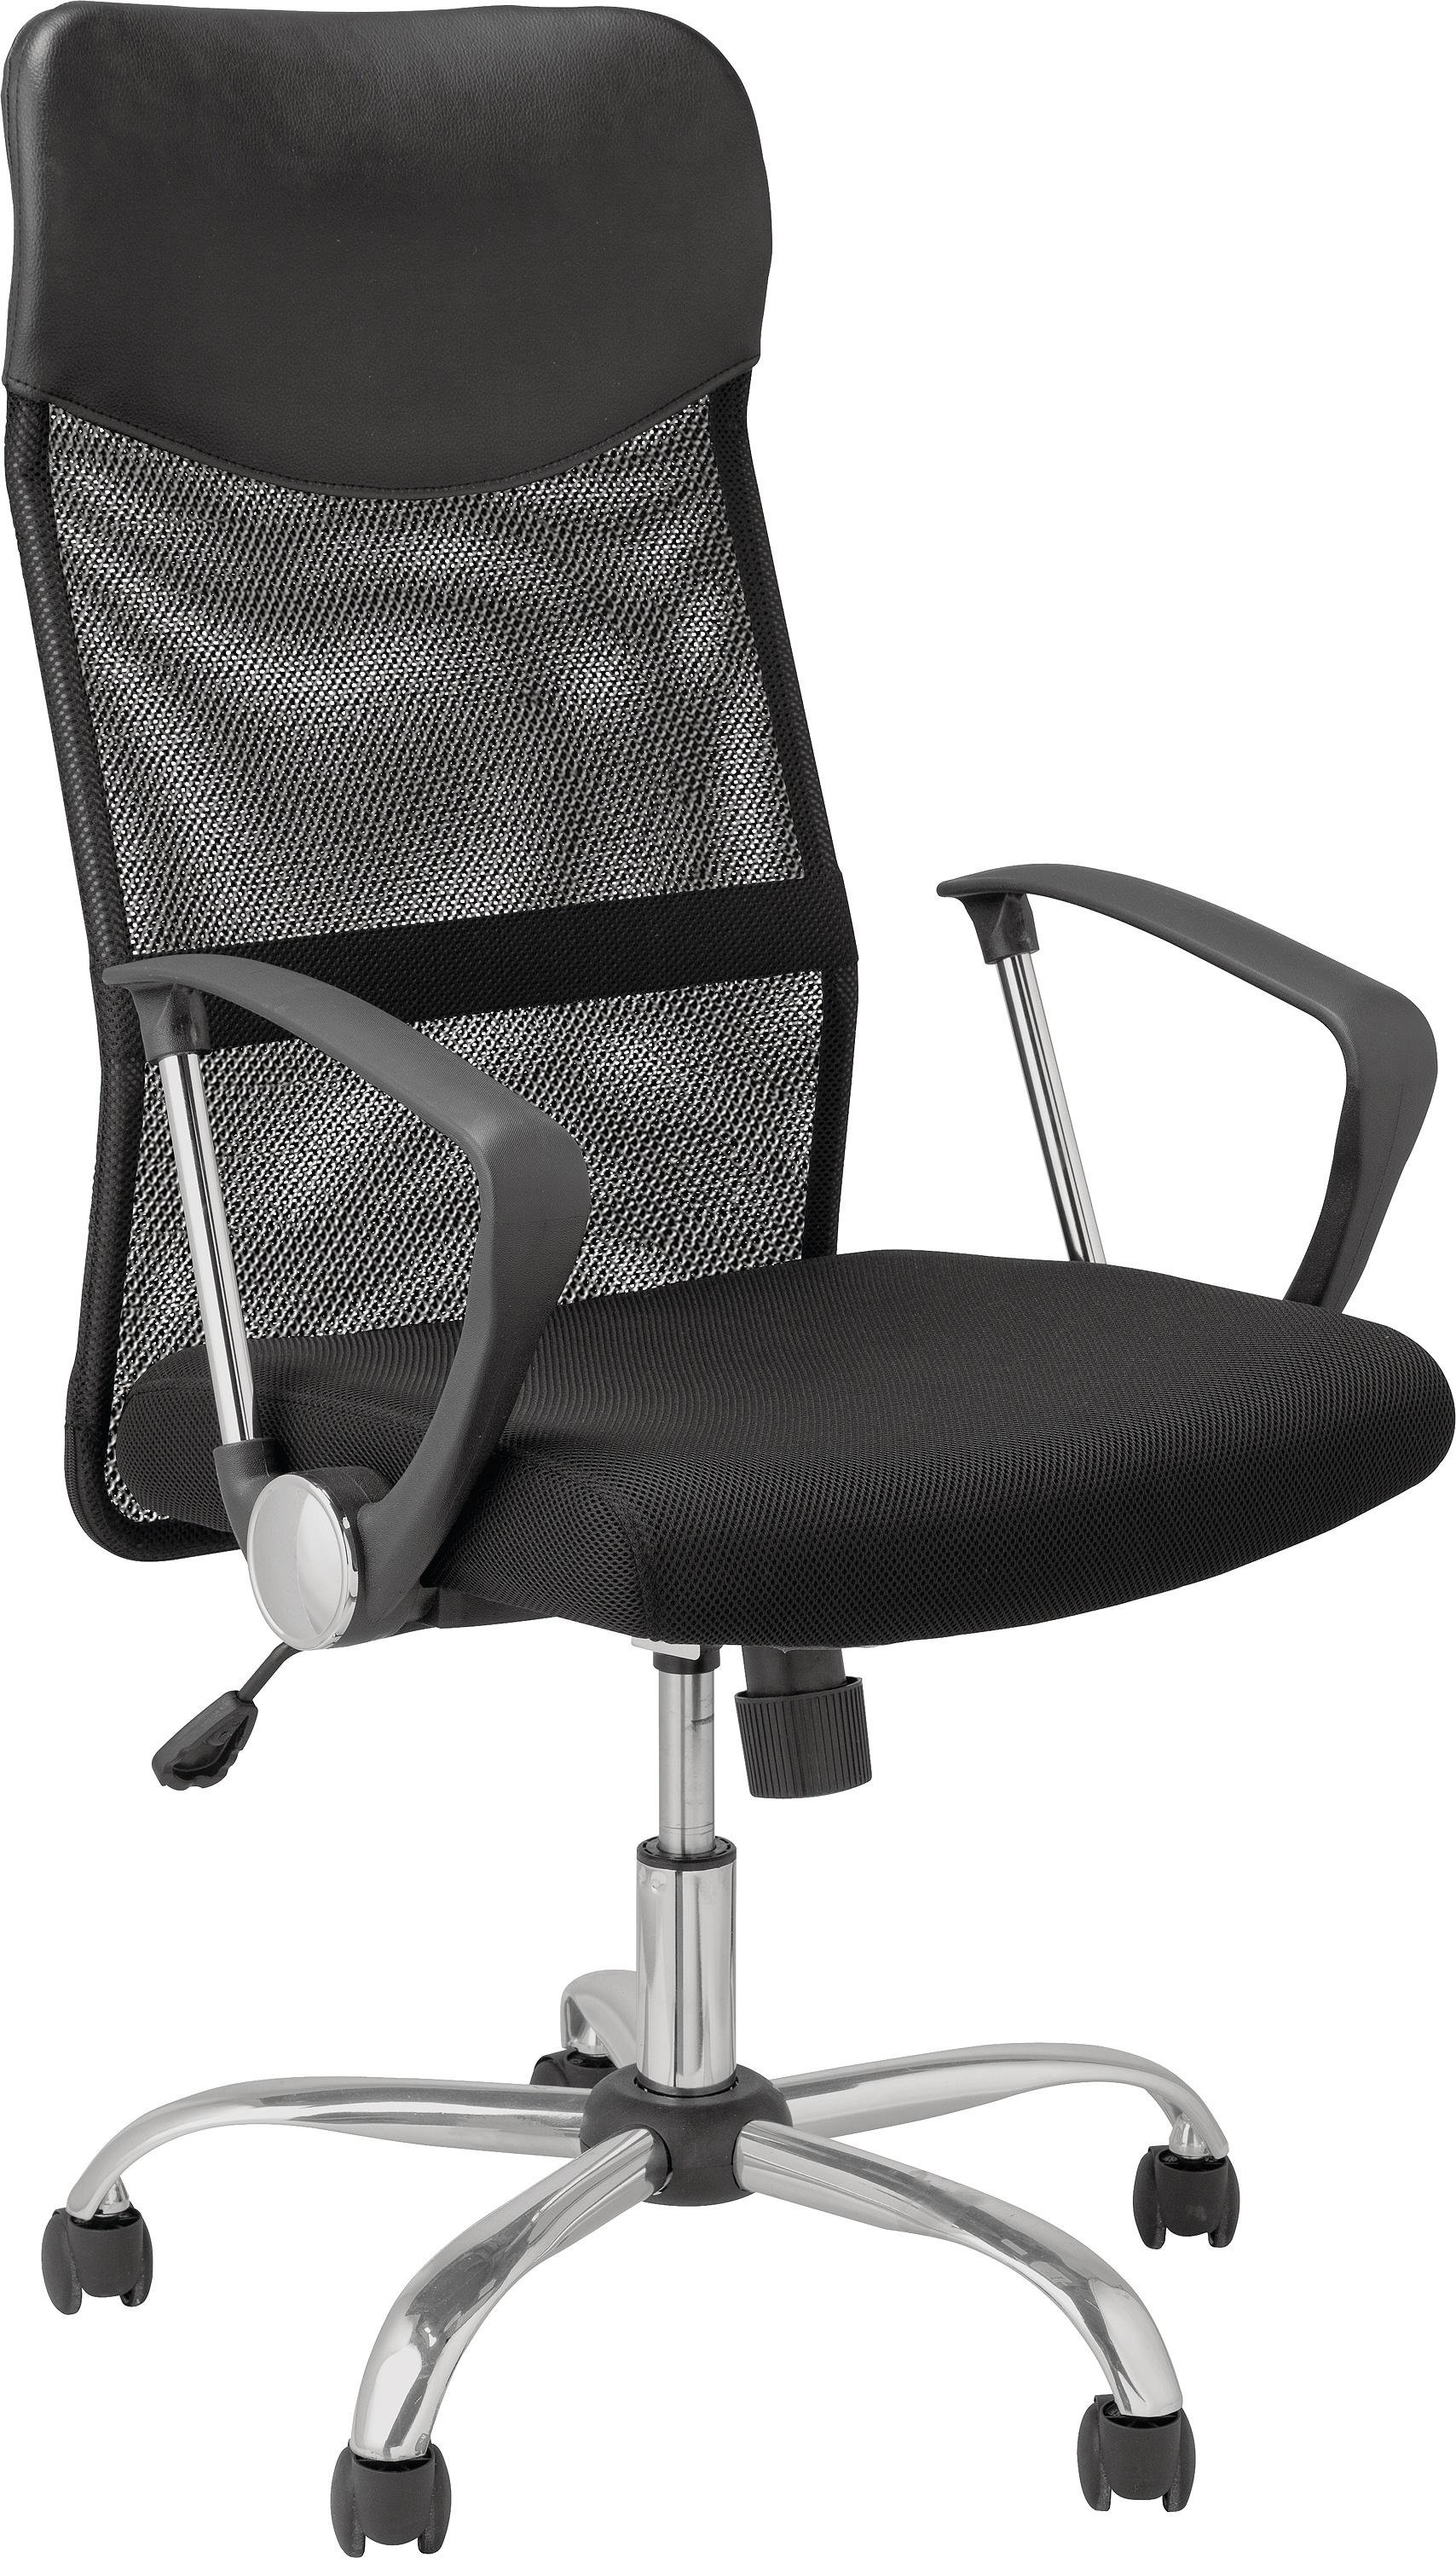 buy home mesh & leather effect adjustable office chair - black at